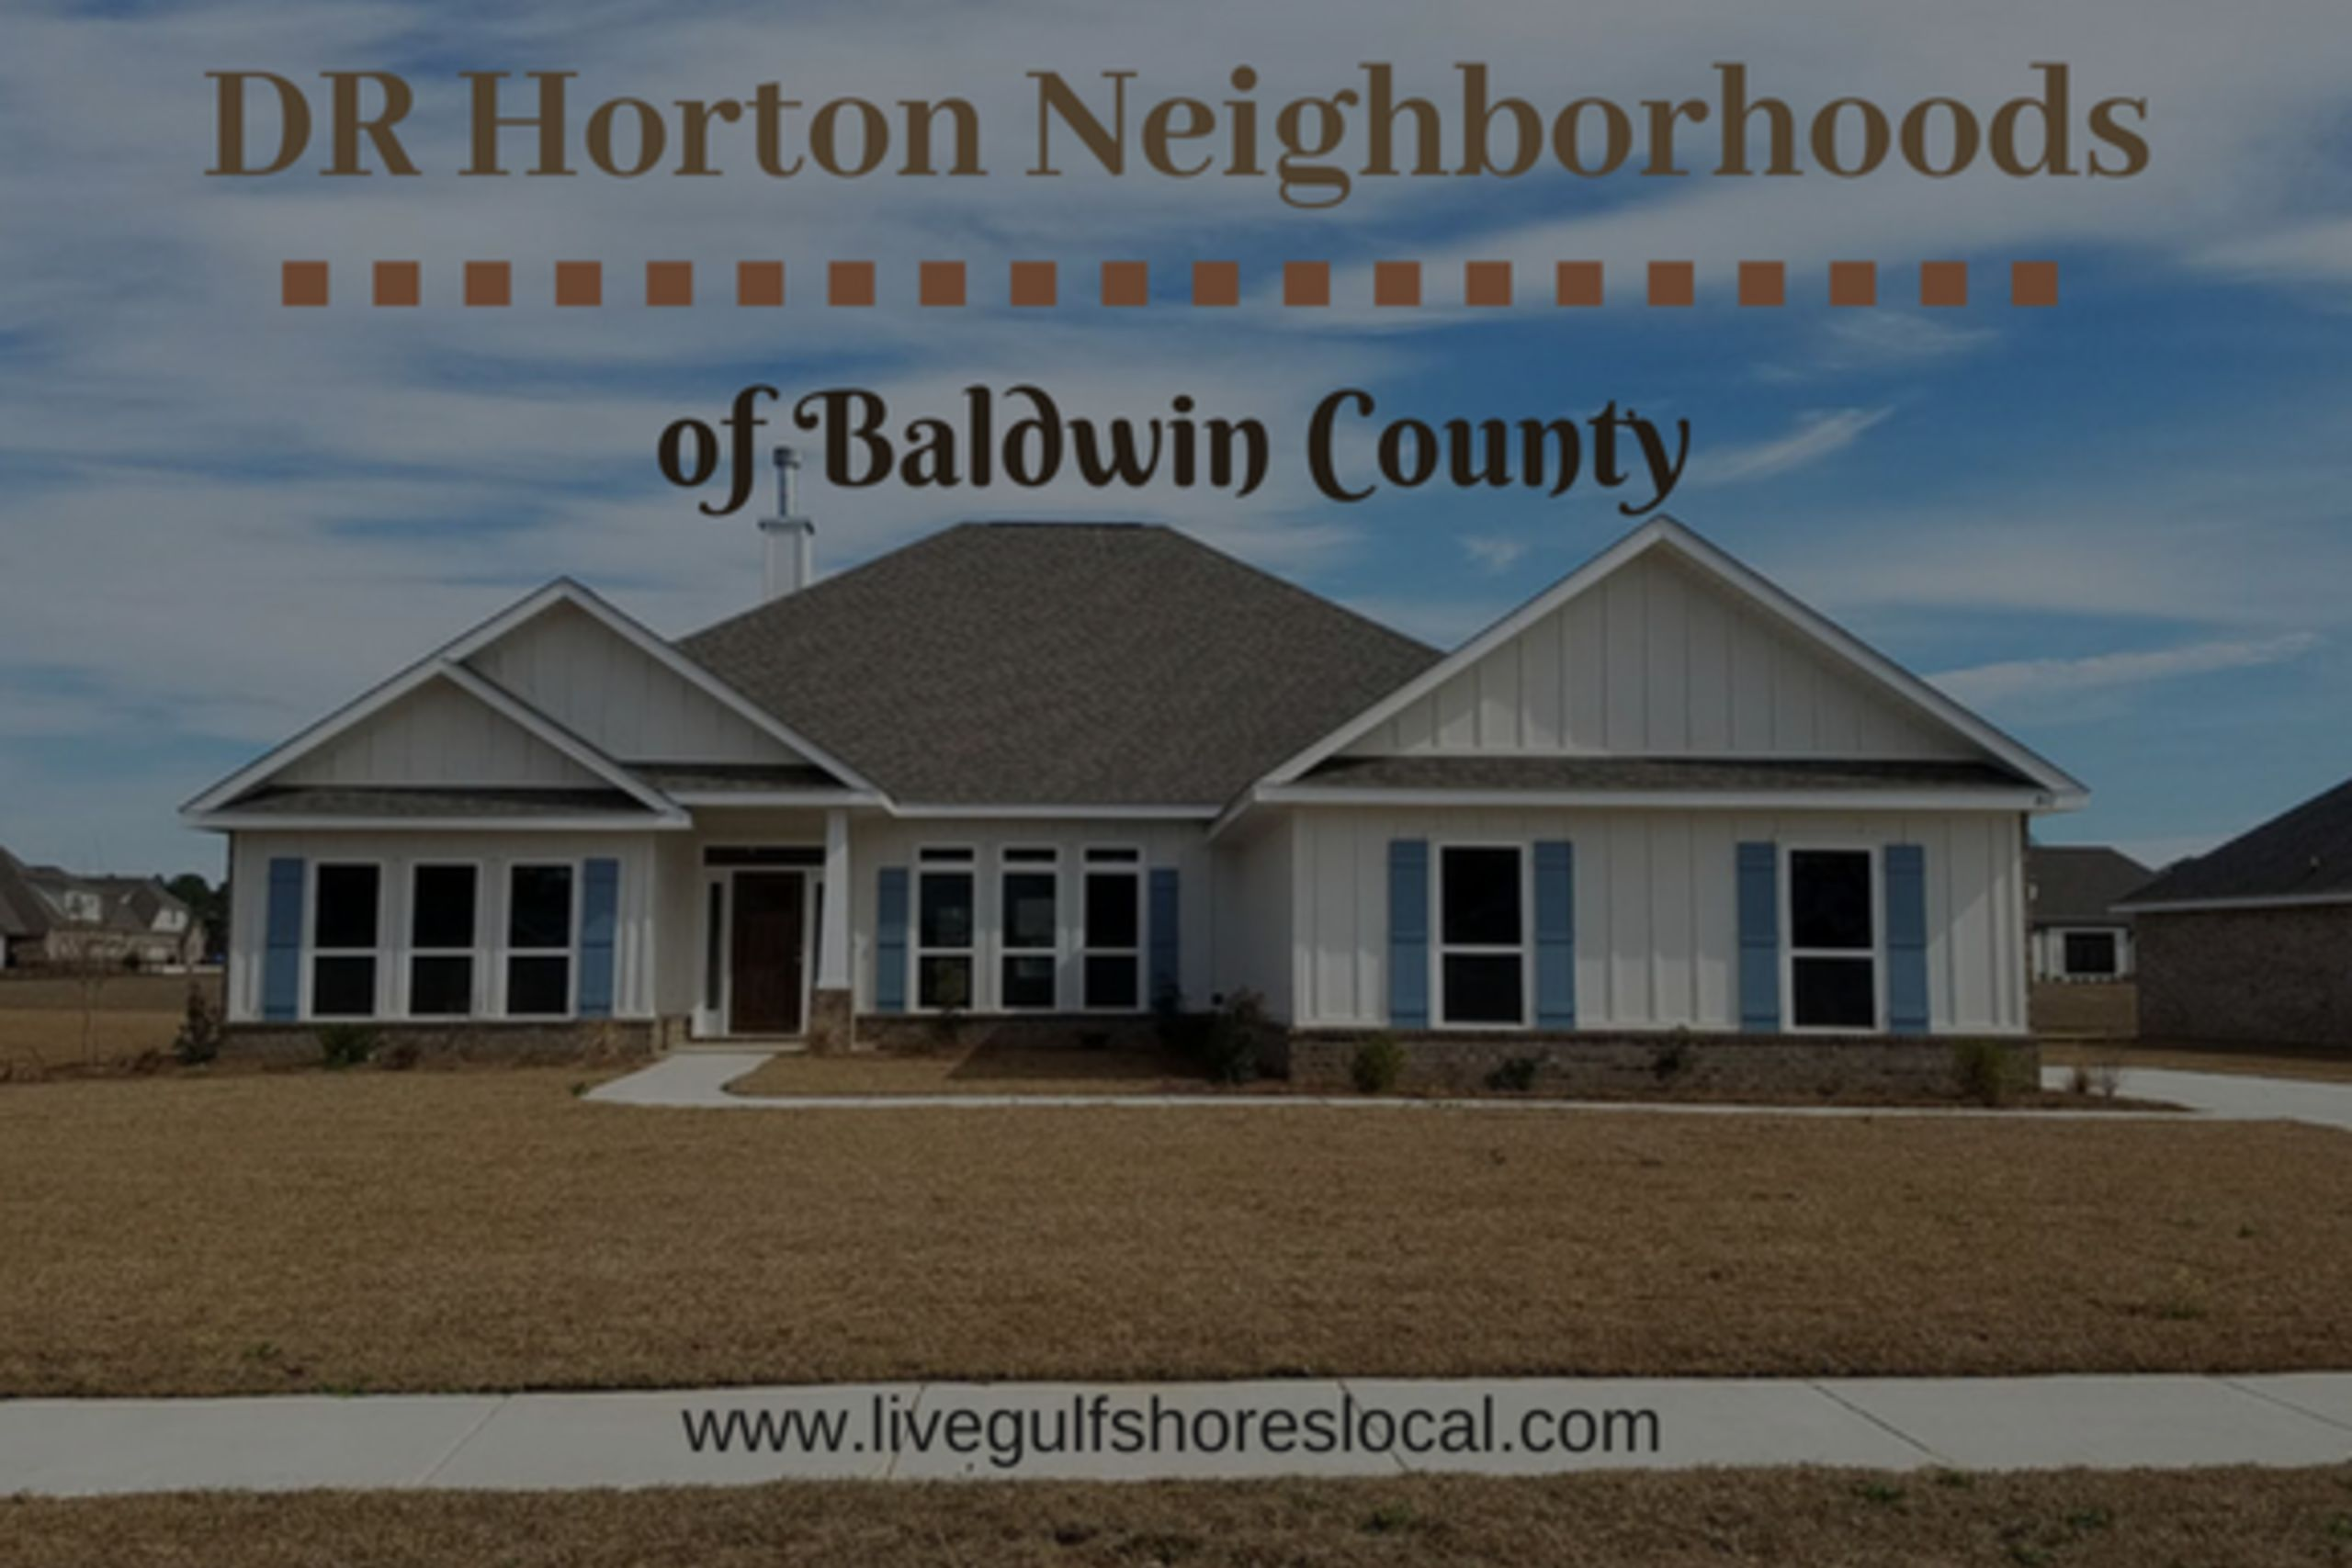 DR Horton Neighborhoods in Baldwin County- Homes for Sale